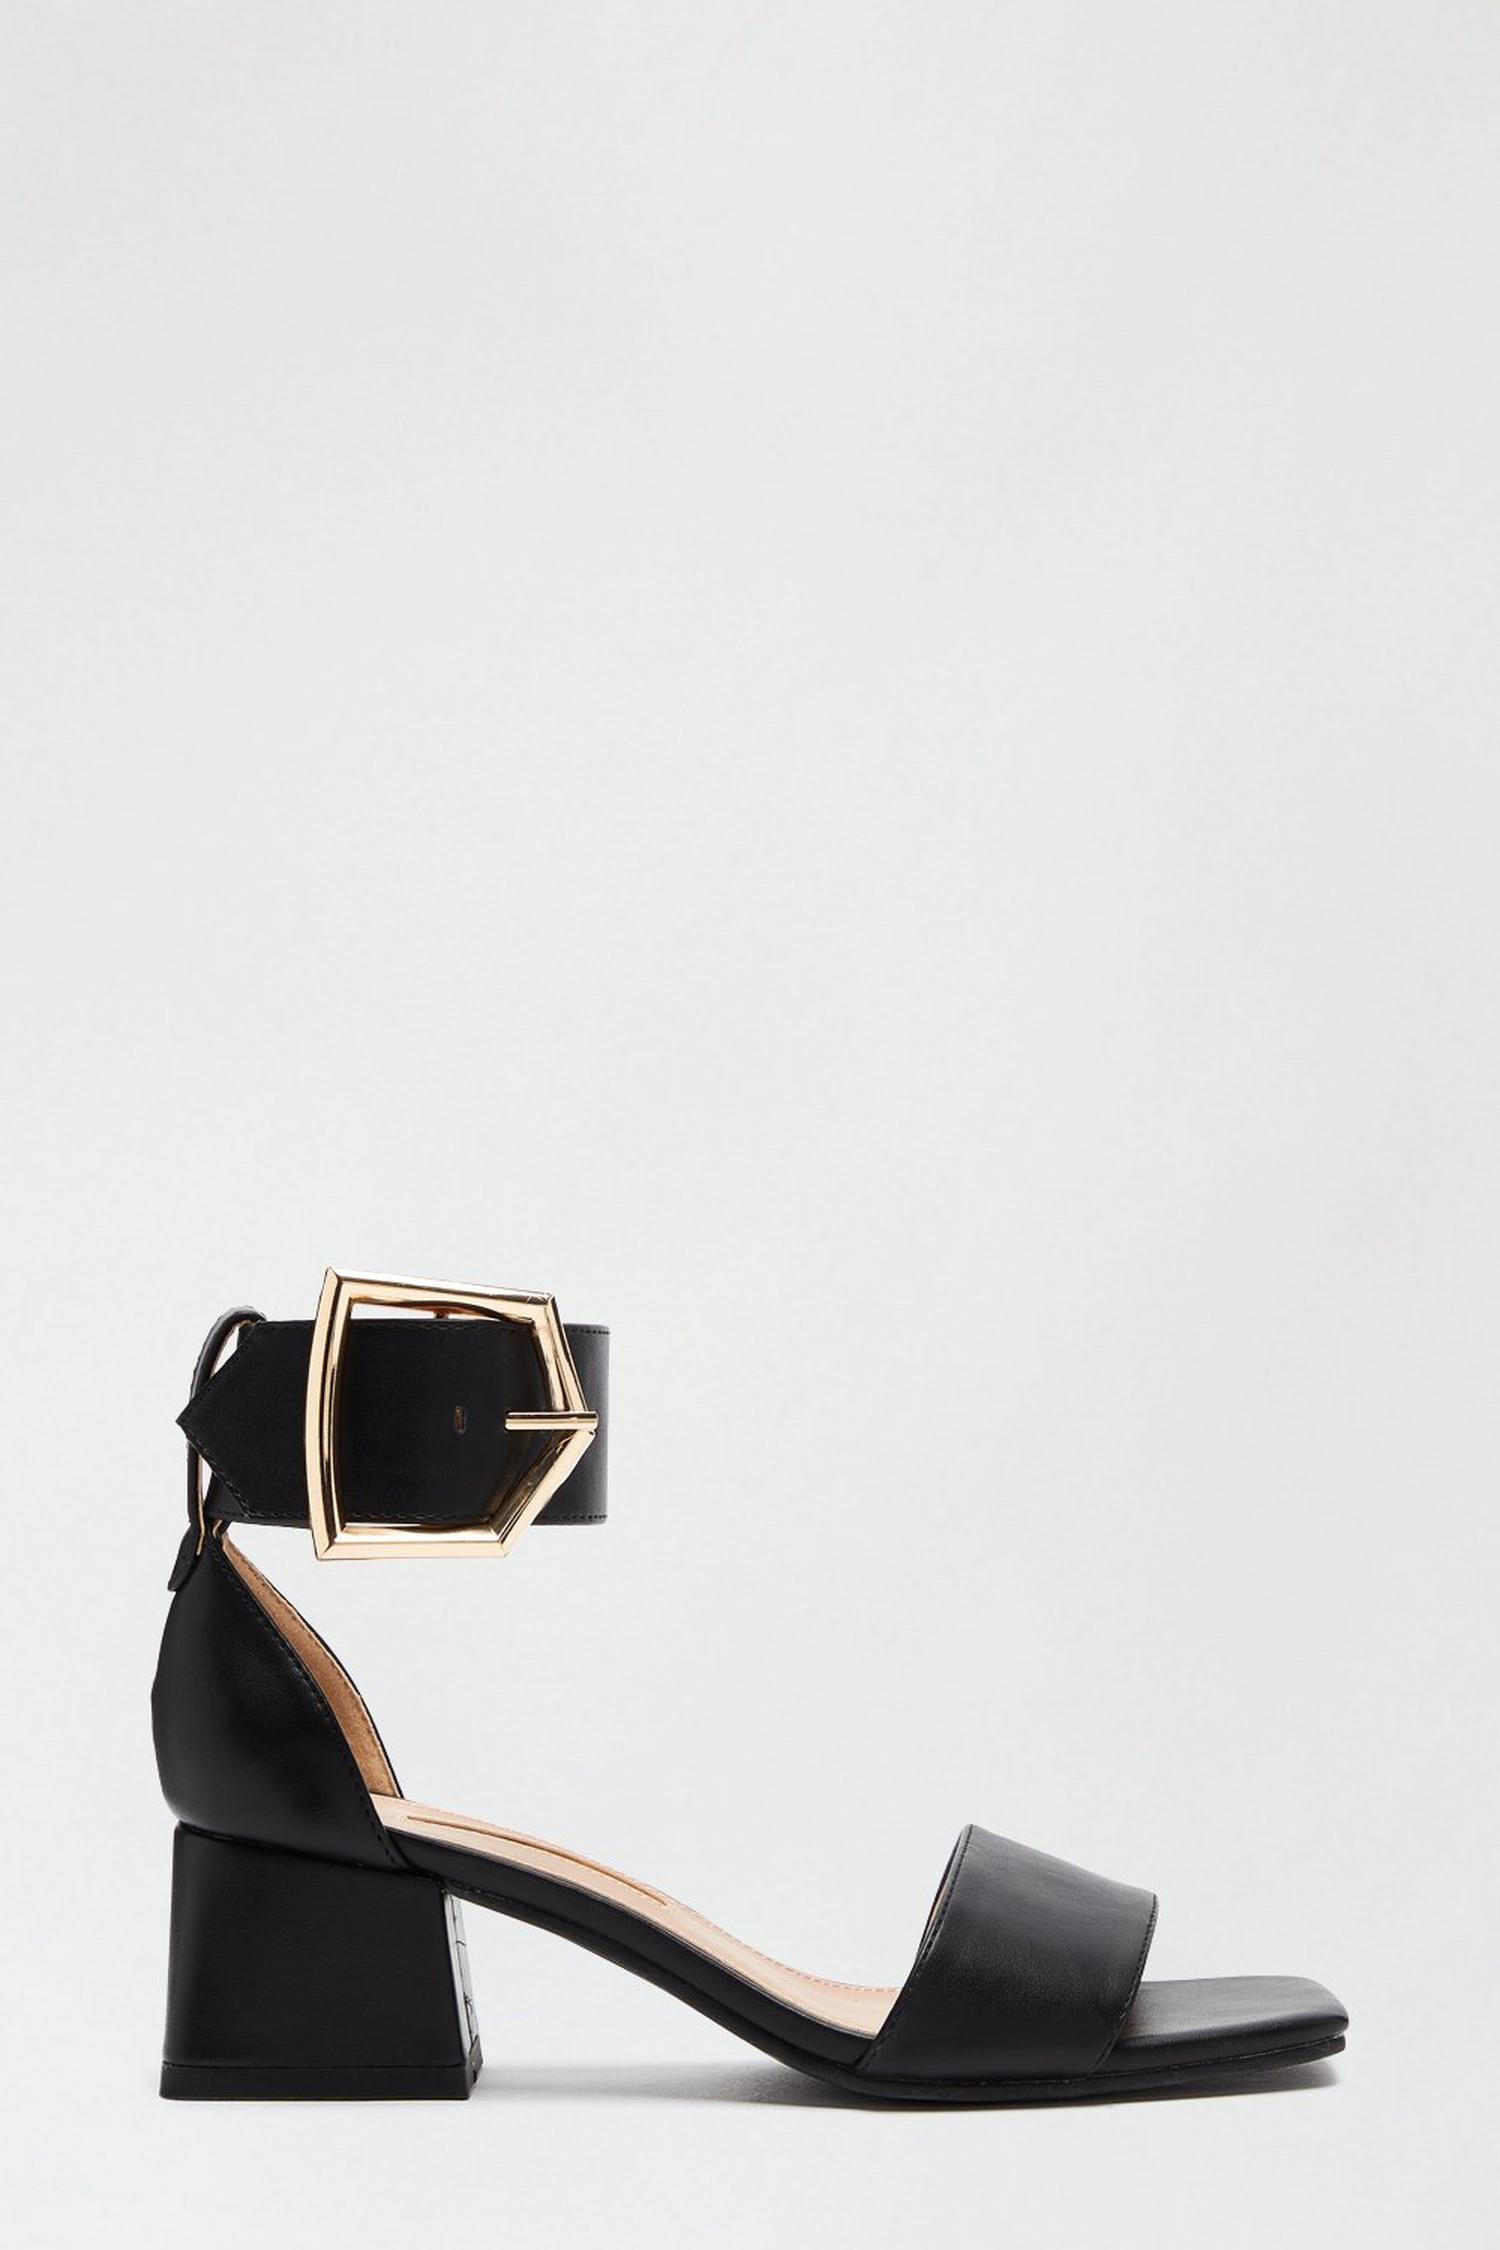 105 Black Saga Heeled Sandal image number 1